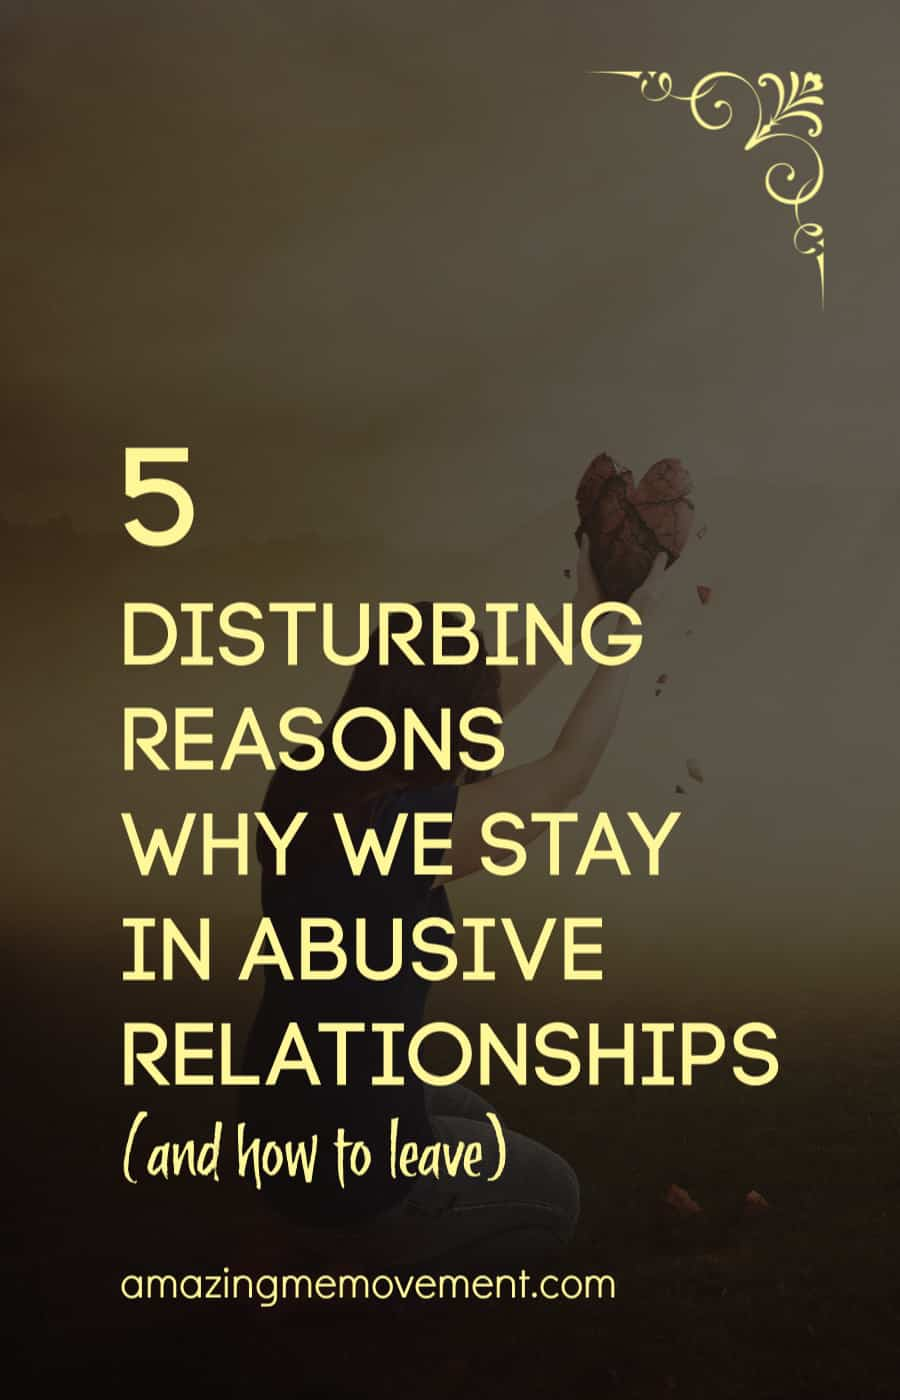 why we stay in abusive relationships